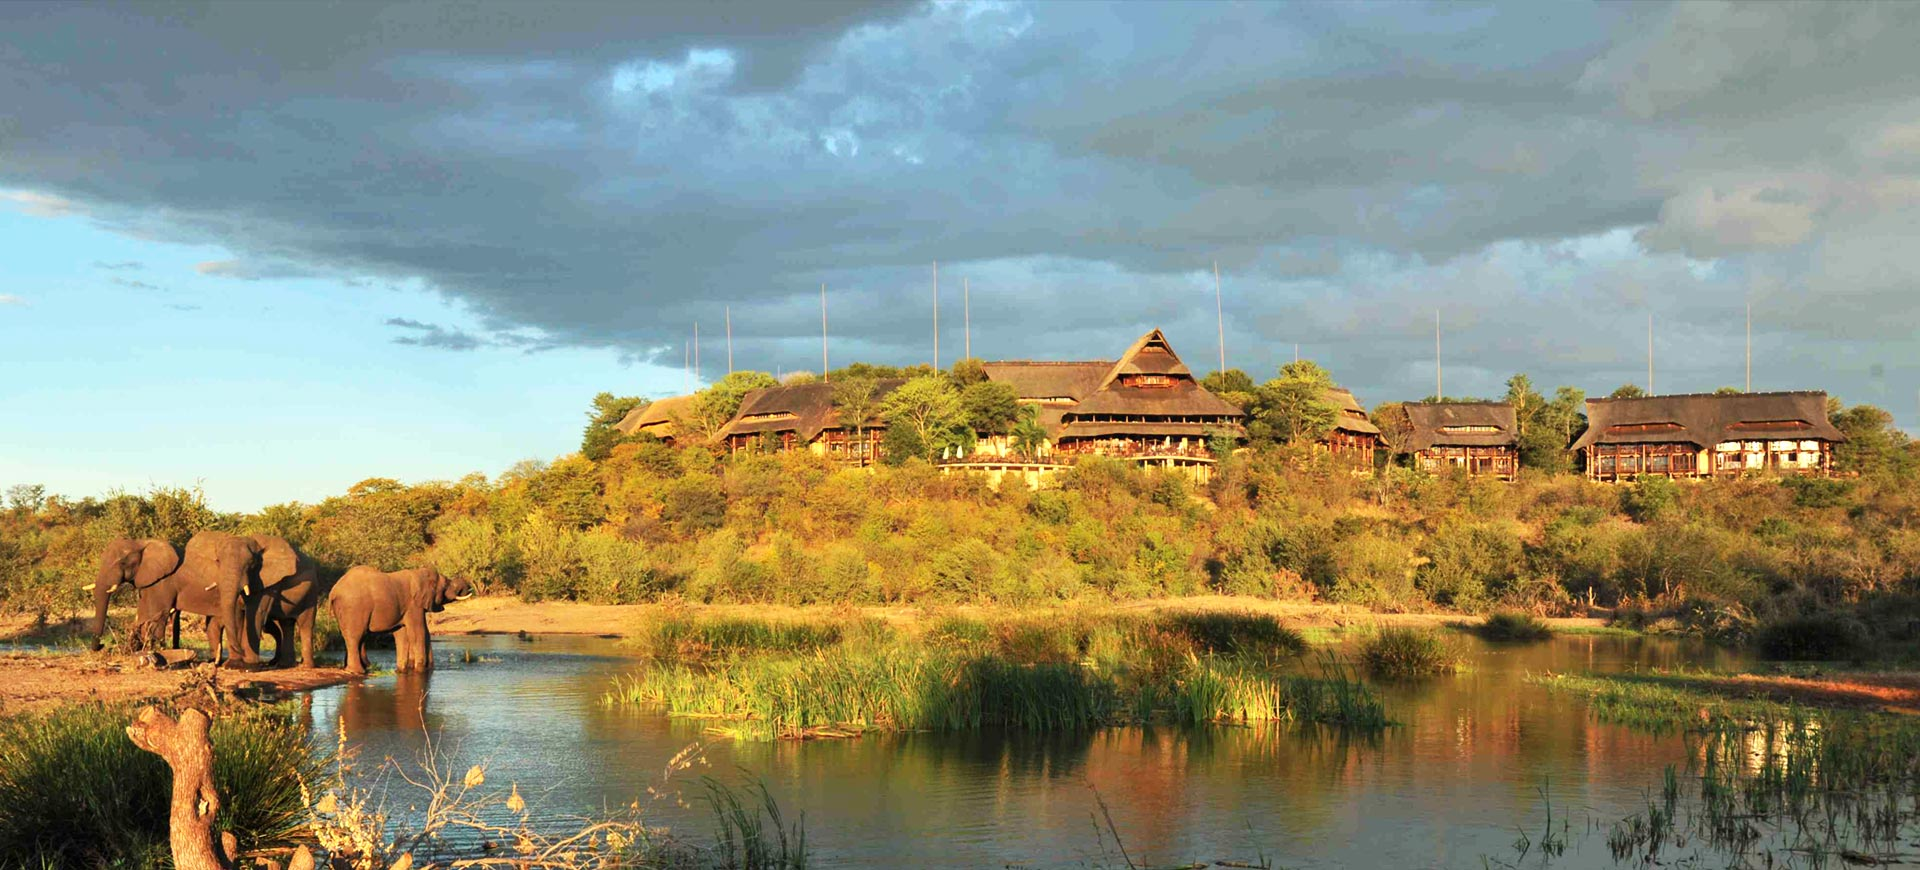 Victoria Falls Safari Lodge Waterhole